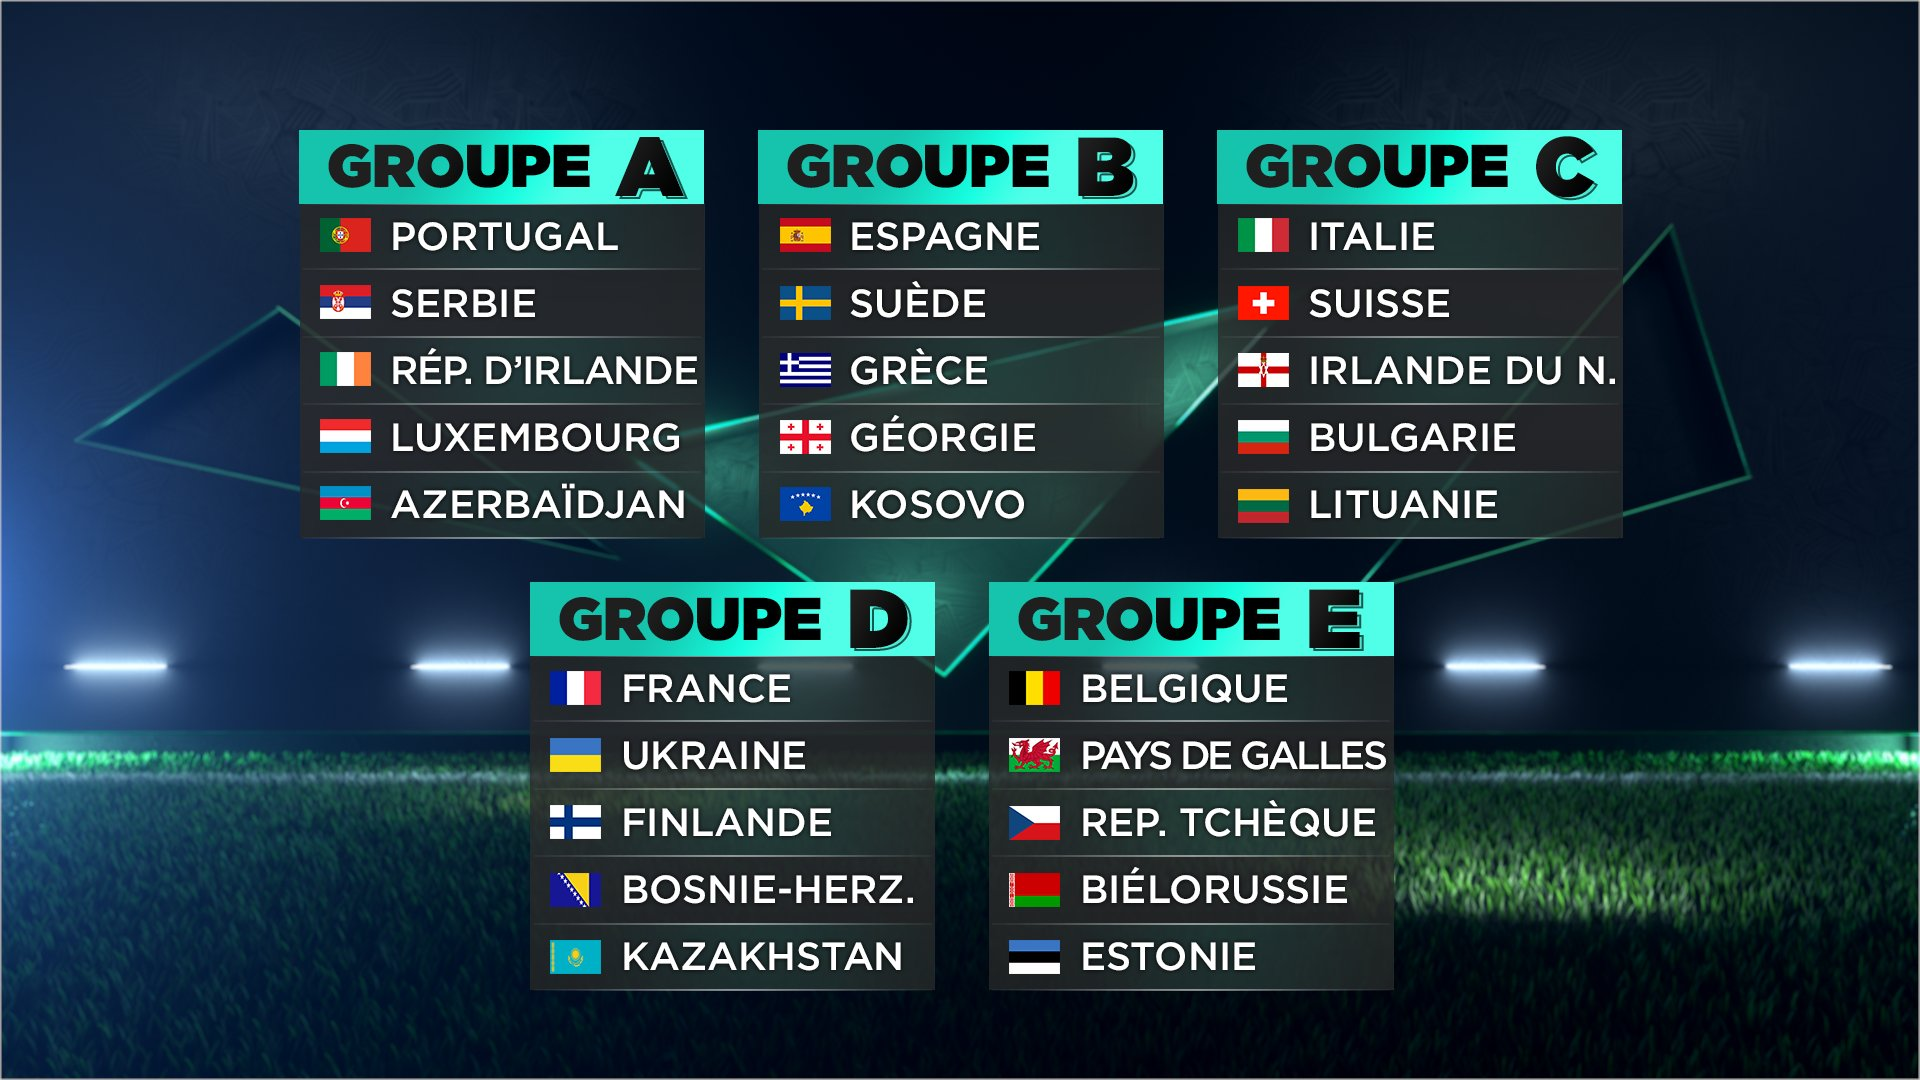 FOOTBALL COUPE DU MONDE 2022 - Page 2 Eop1wisXUAMYqYD?format=jpg&name=large